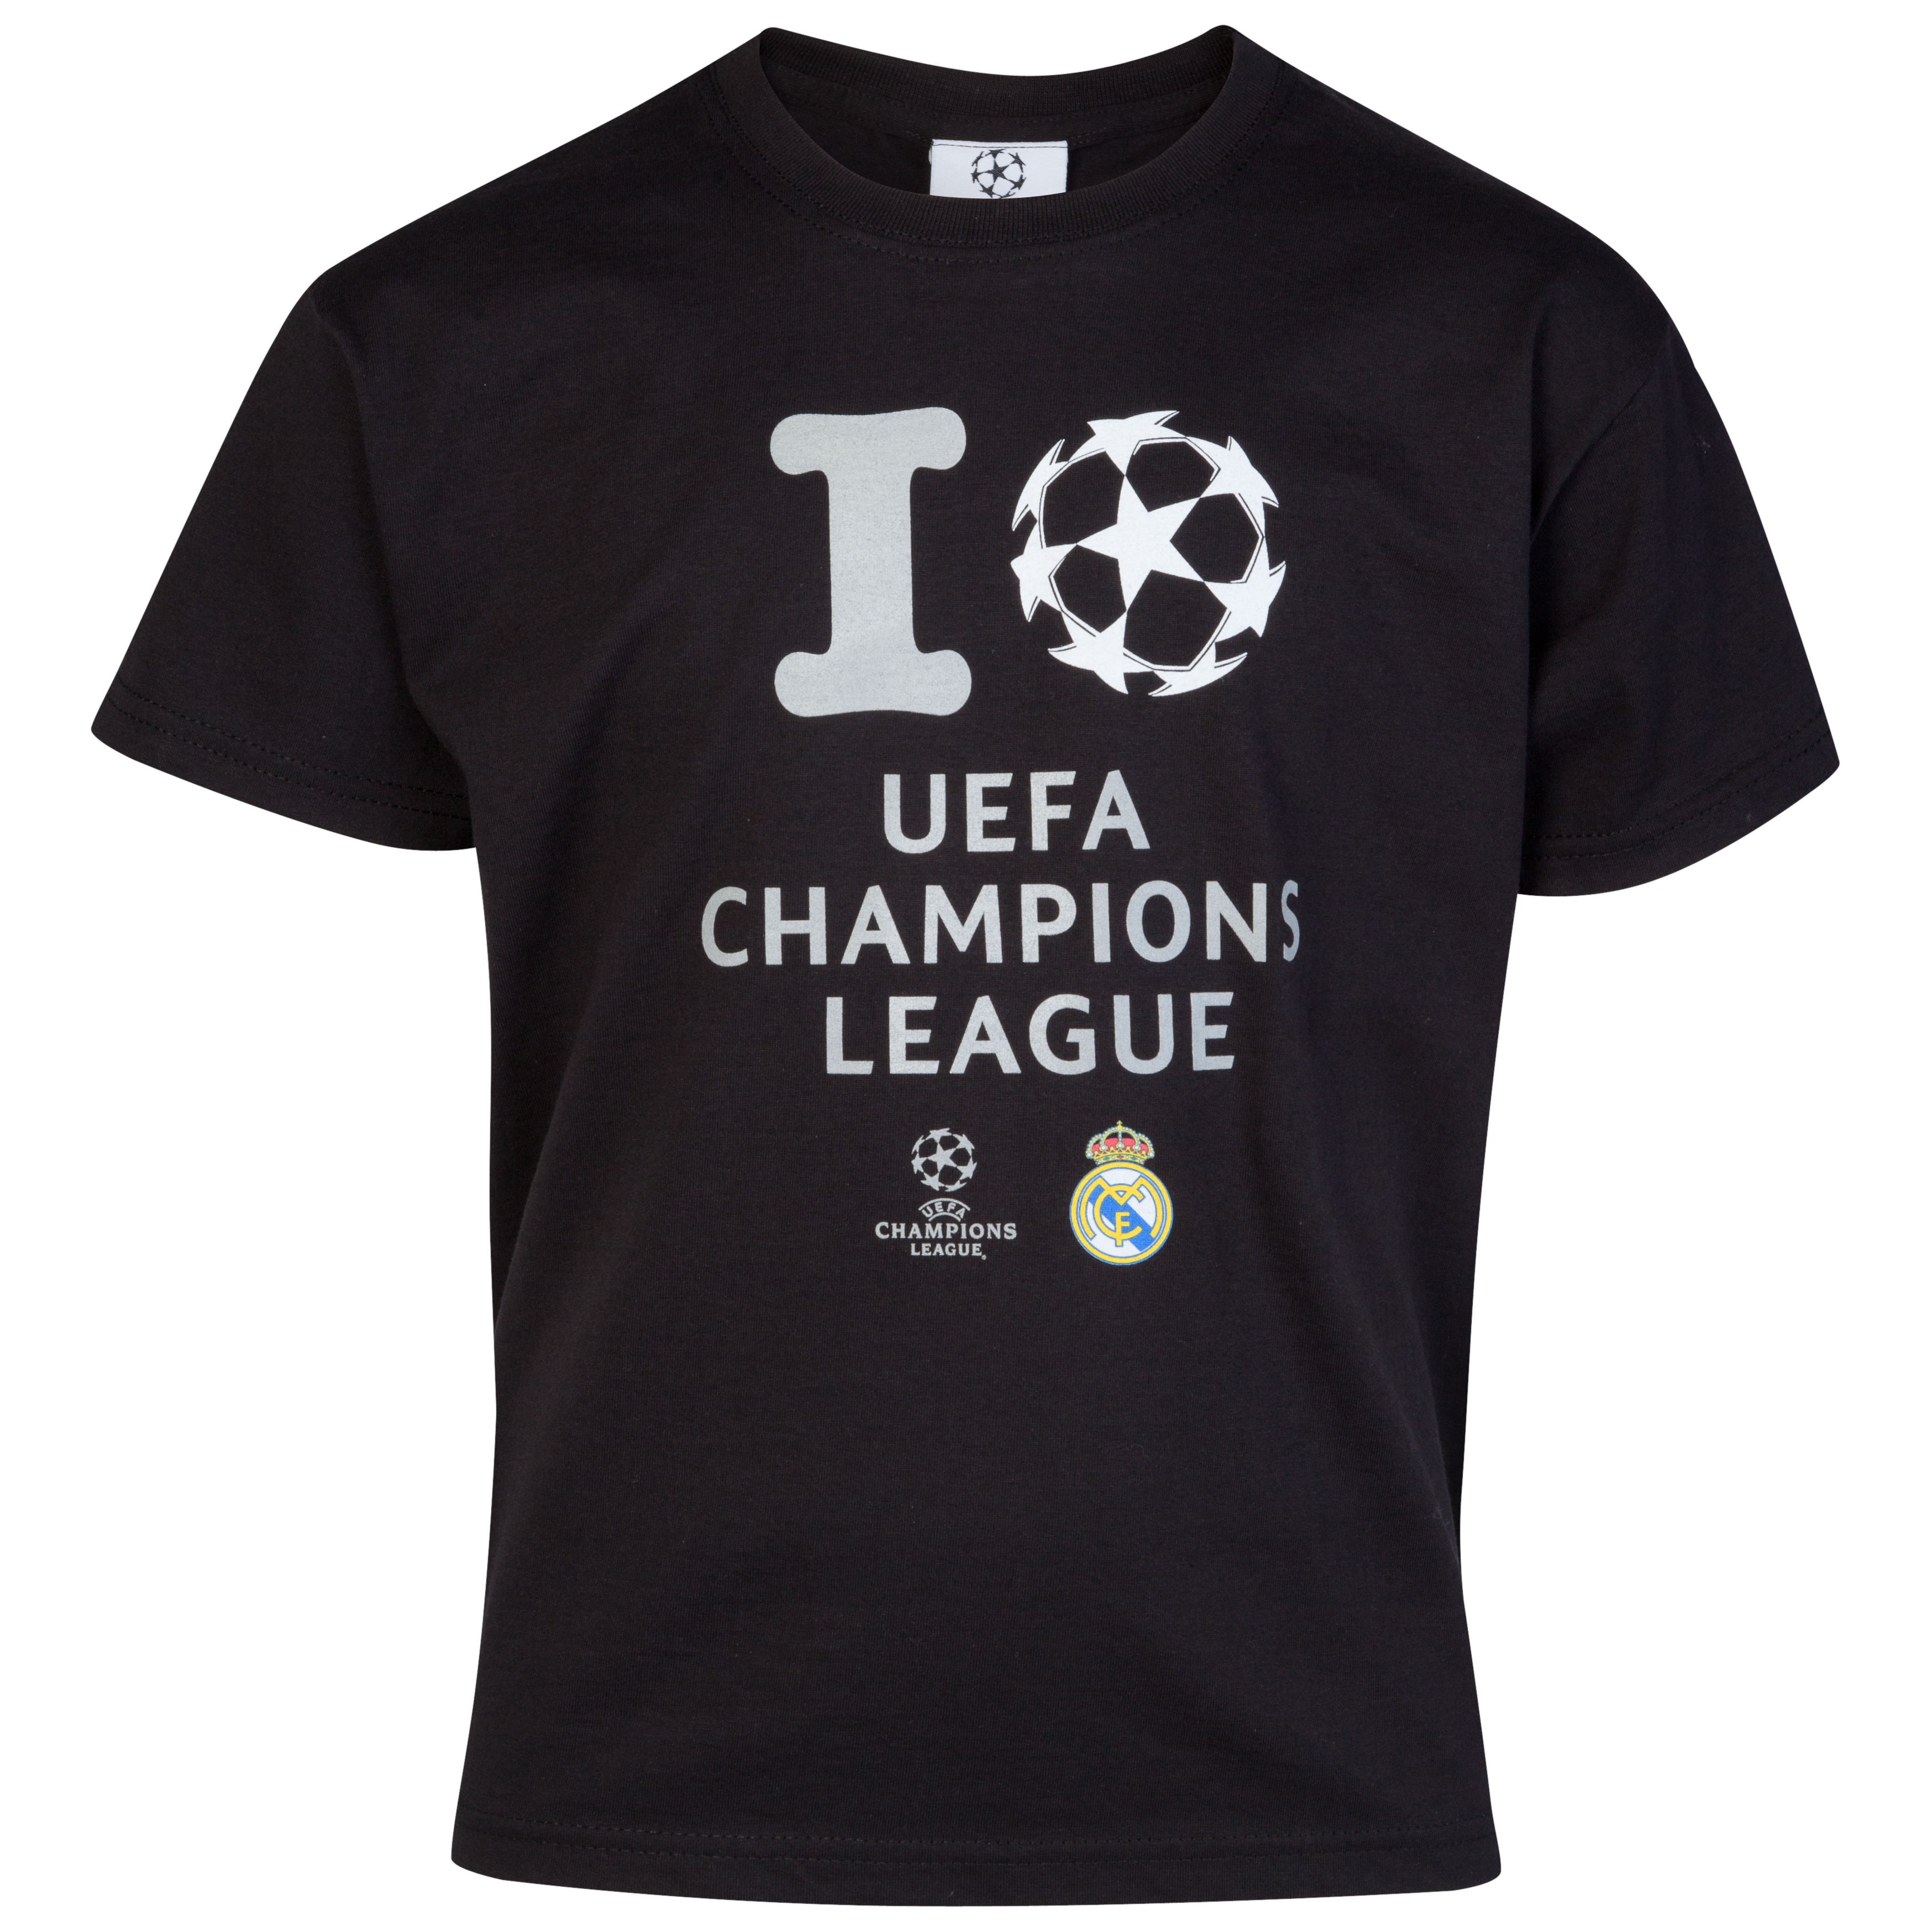 Real Madrid UEFA Champions League 'I Love UCL' Glow In The Dark Printed T-Shirt - Black - Junior